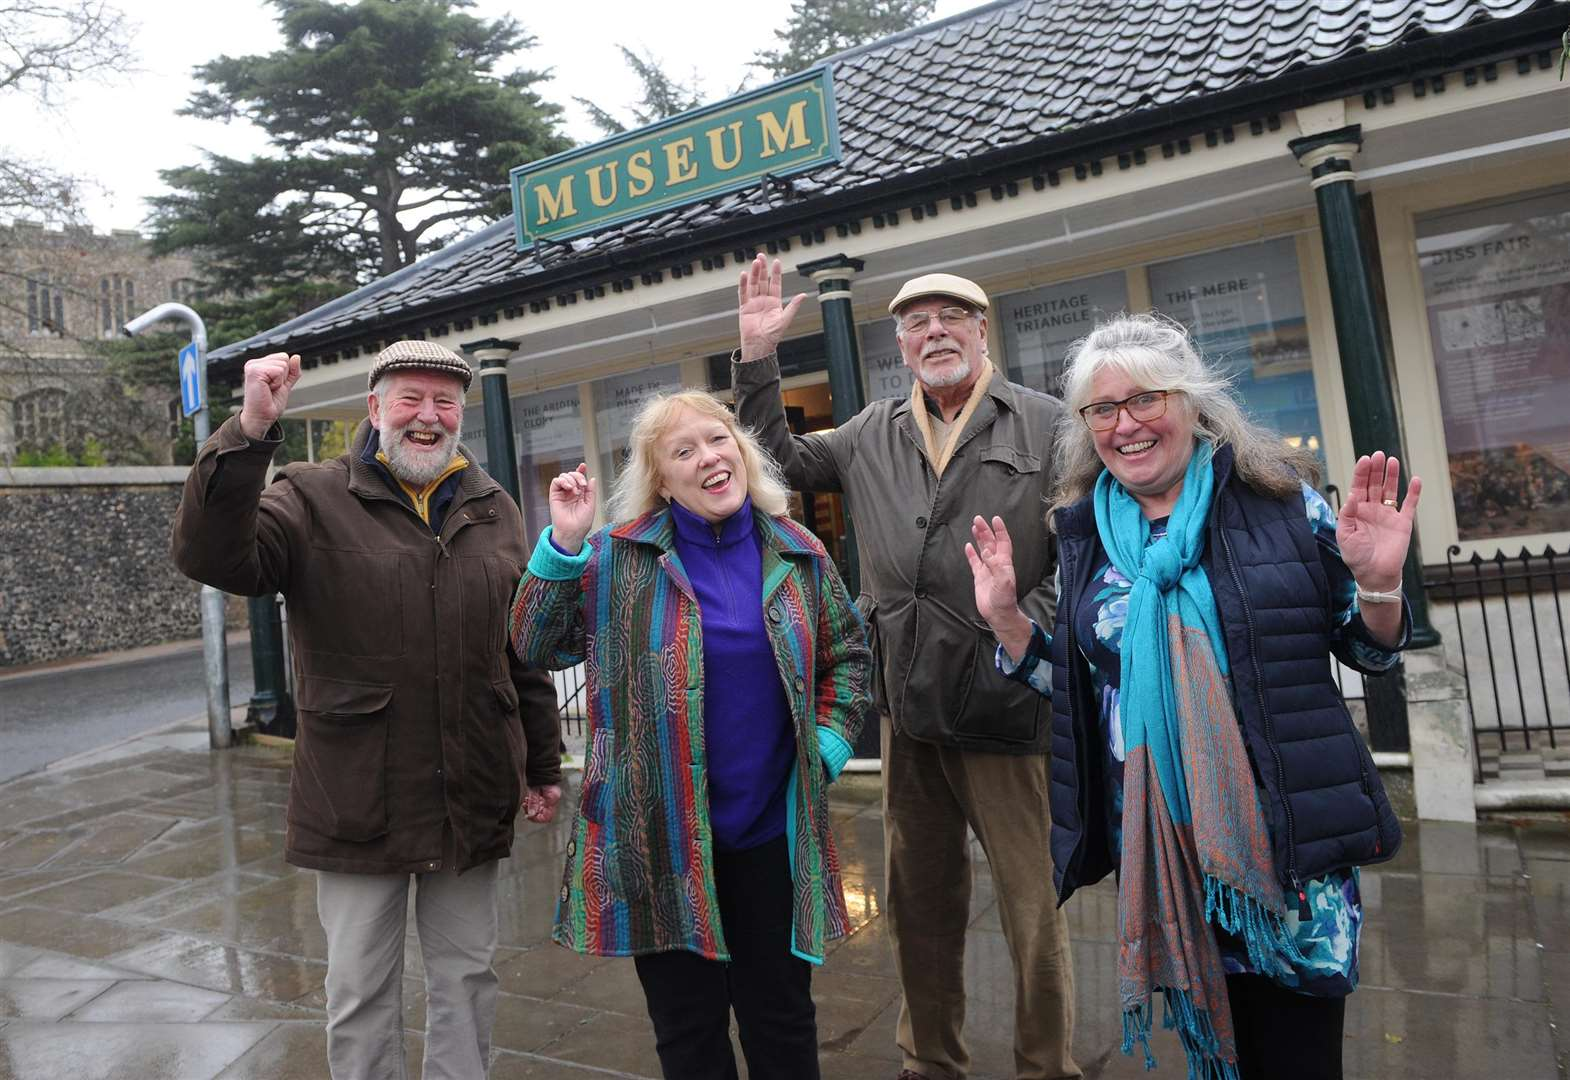 Diss Museum bucks the trend as visitors numbers soar